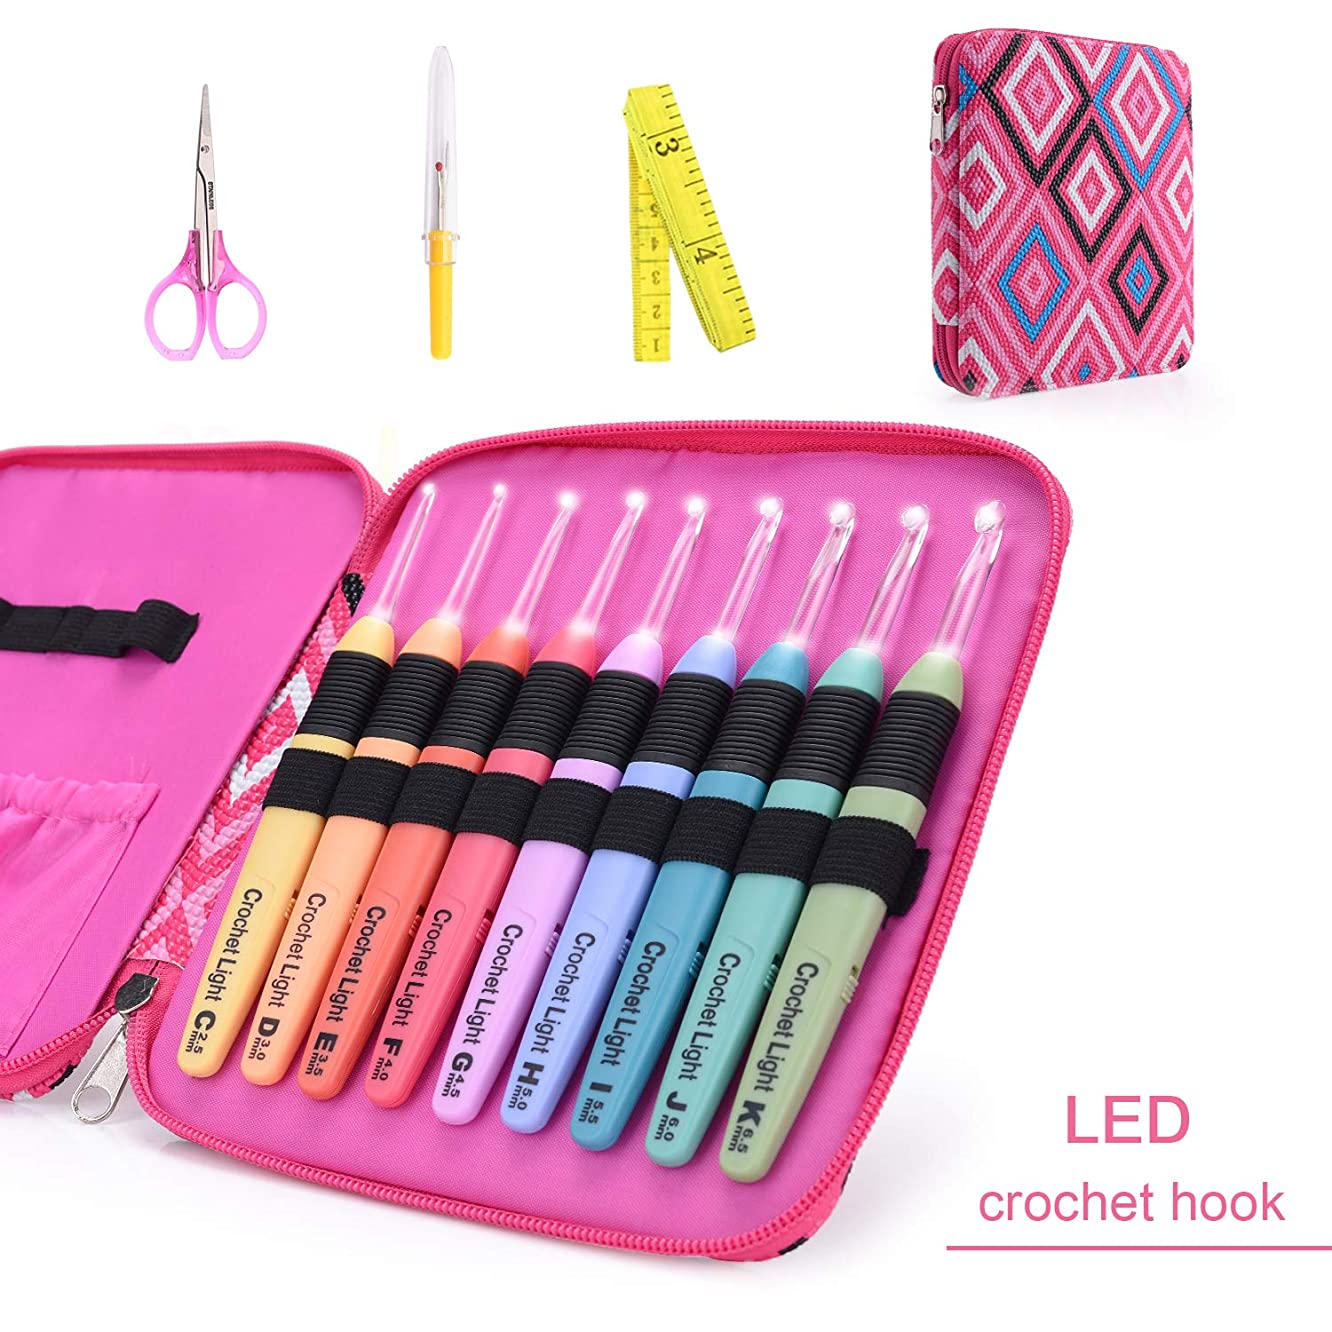 Lighted Crochet Hooks Fashion Pink Case with Crochet Accessd Illuminated 9 Hooks for Arthritic Hands - Size 2.5mm to 6.5mmories - LED Lite Hooks - Ergonomic Grip Handles & Organizer. Color Code